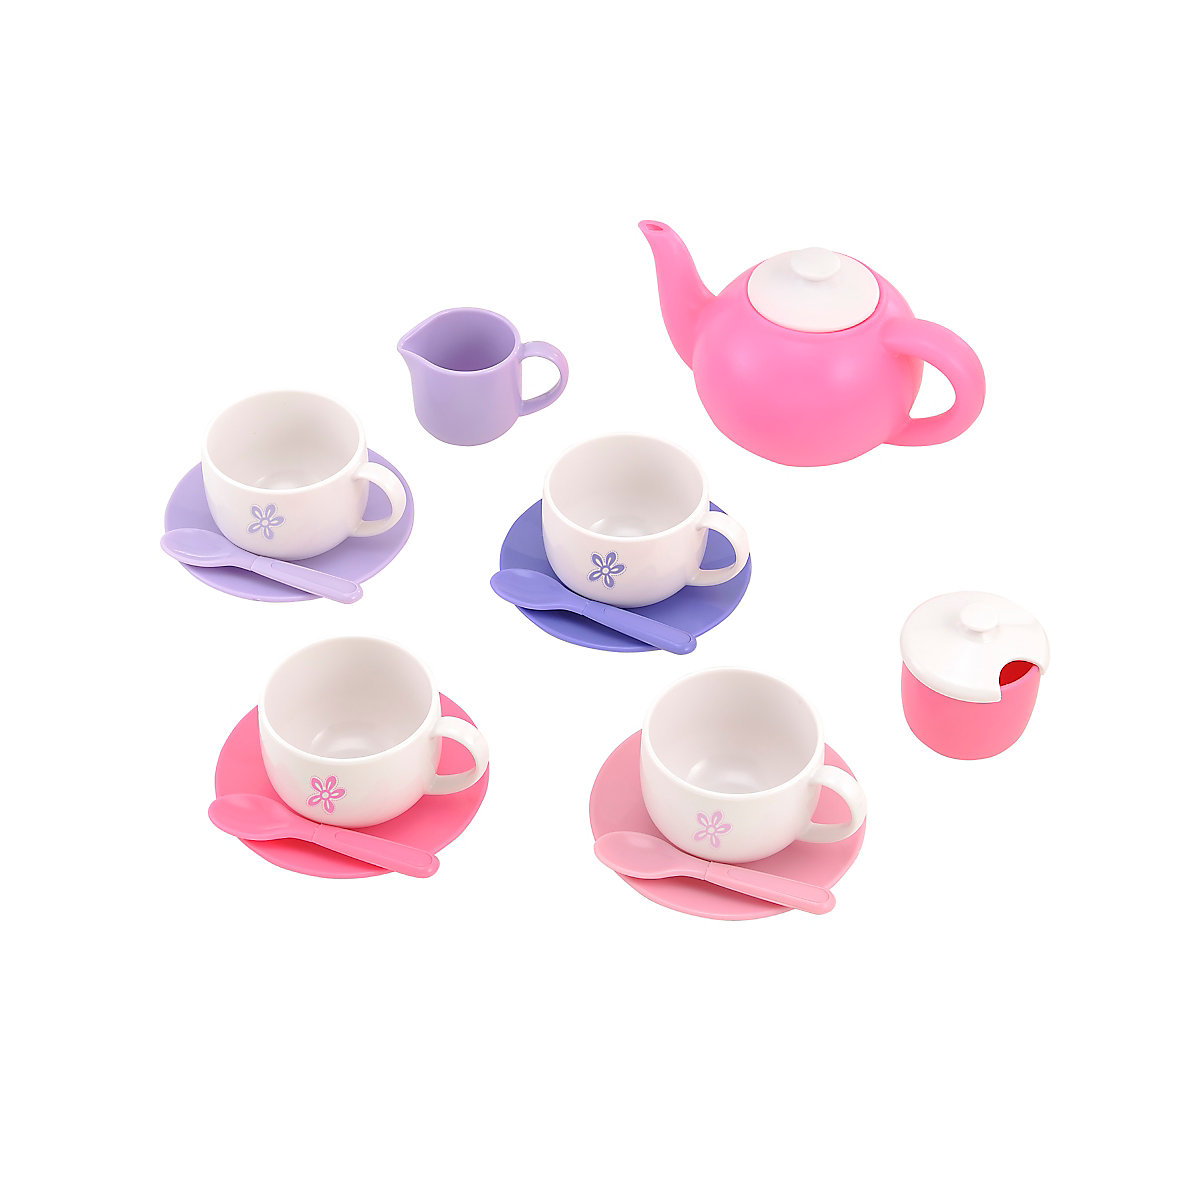 Toy Tea Sets For Boys : New elc boys and girls tea set pink toy from years